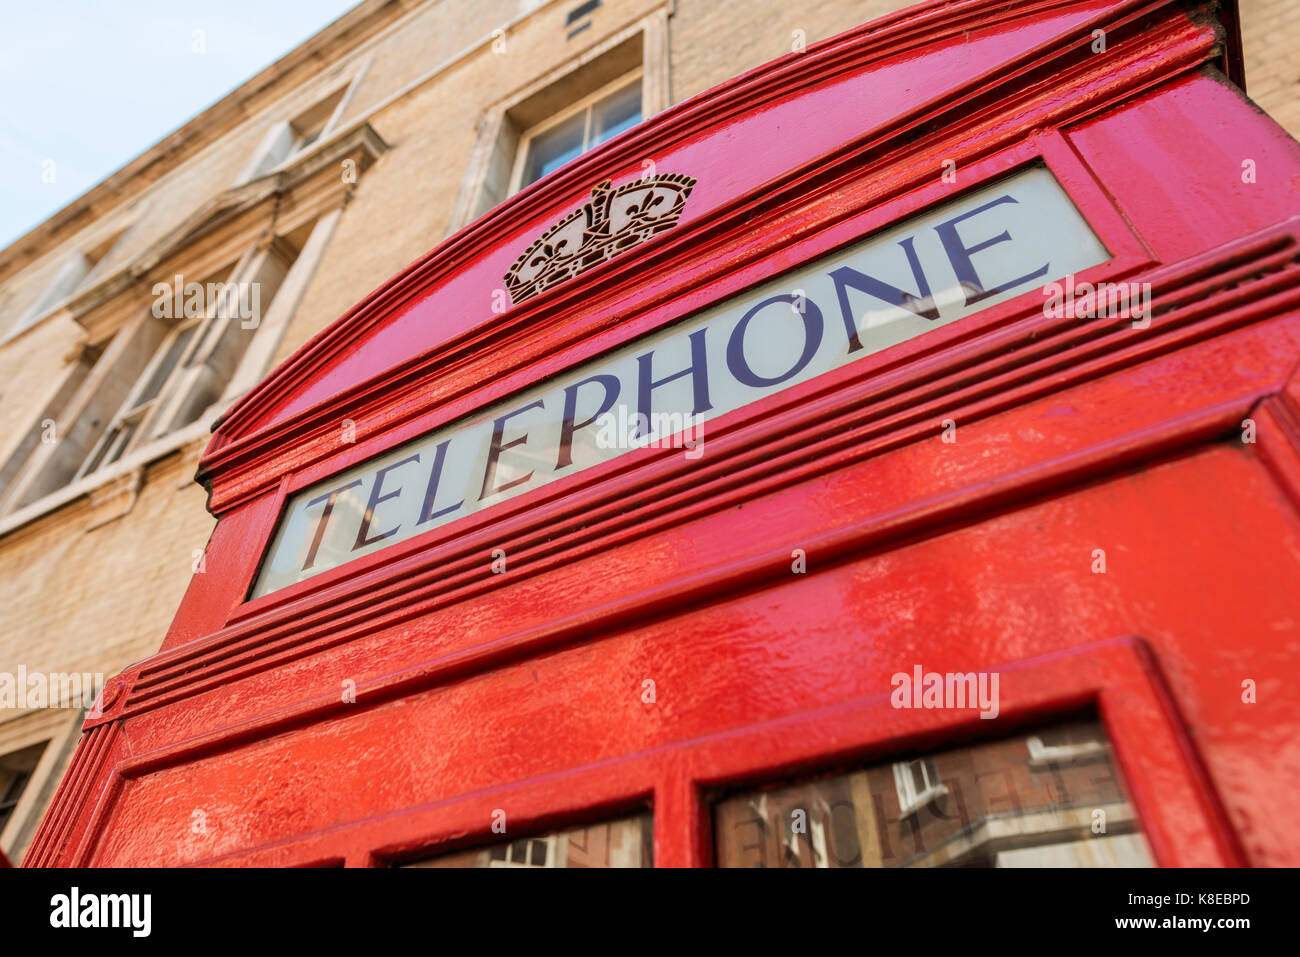 Typical red telephone box, telephone, London, England, Great Britain - Stock Image